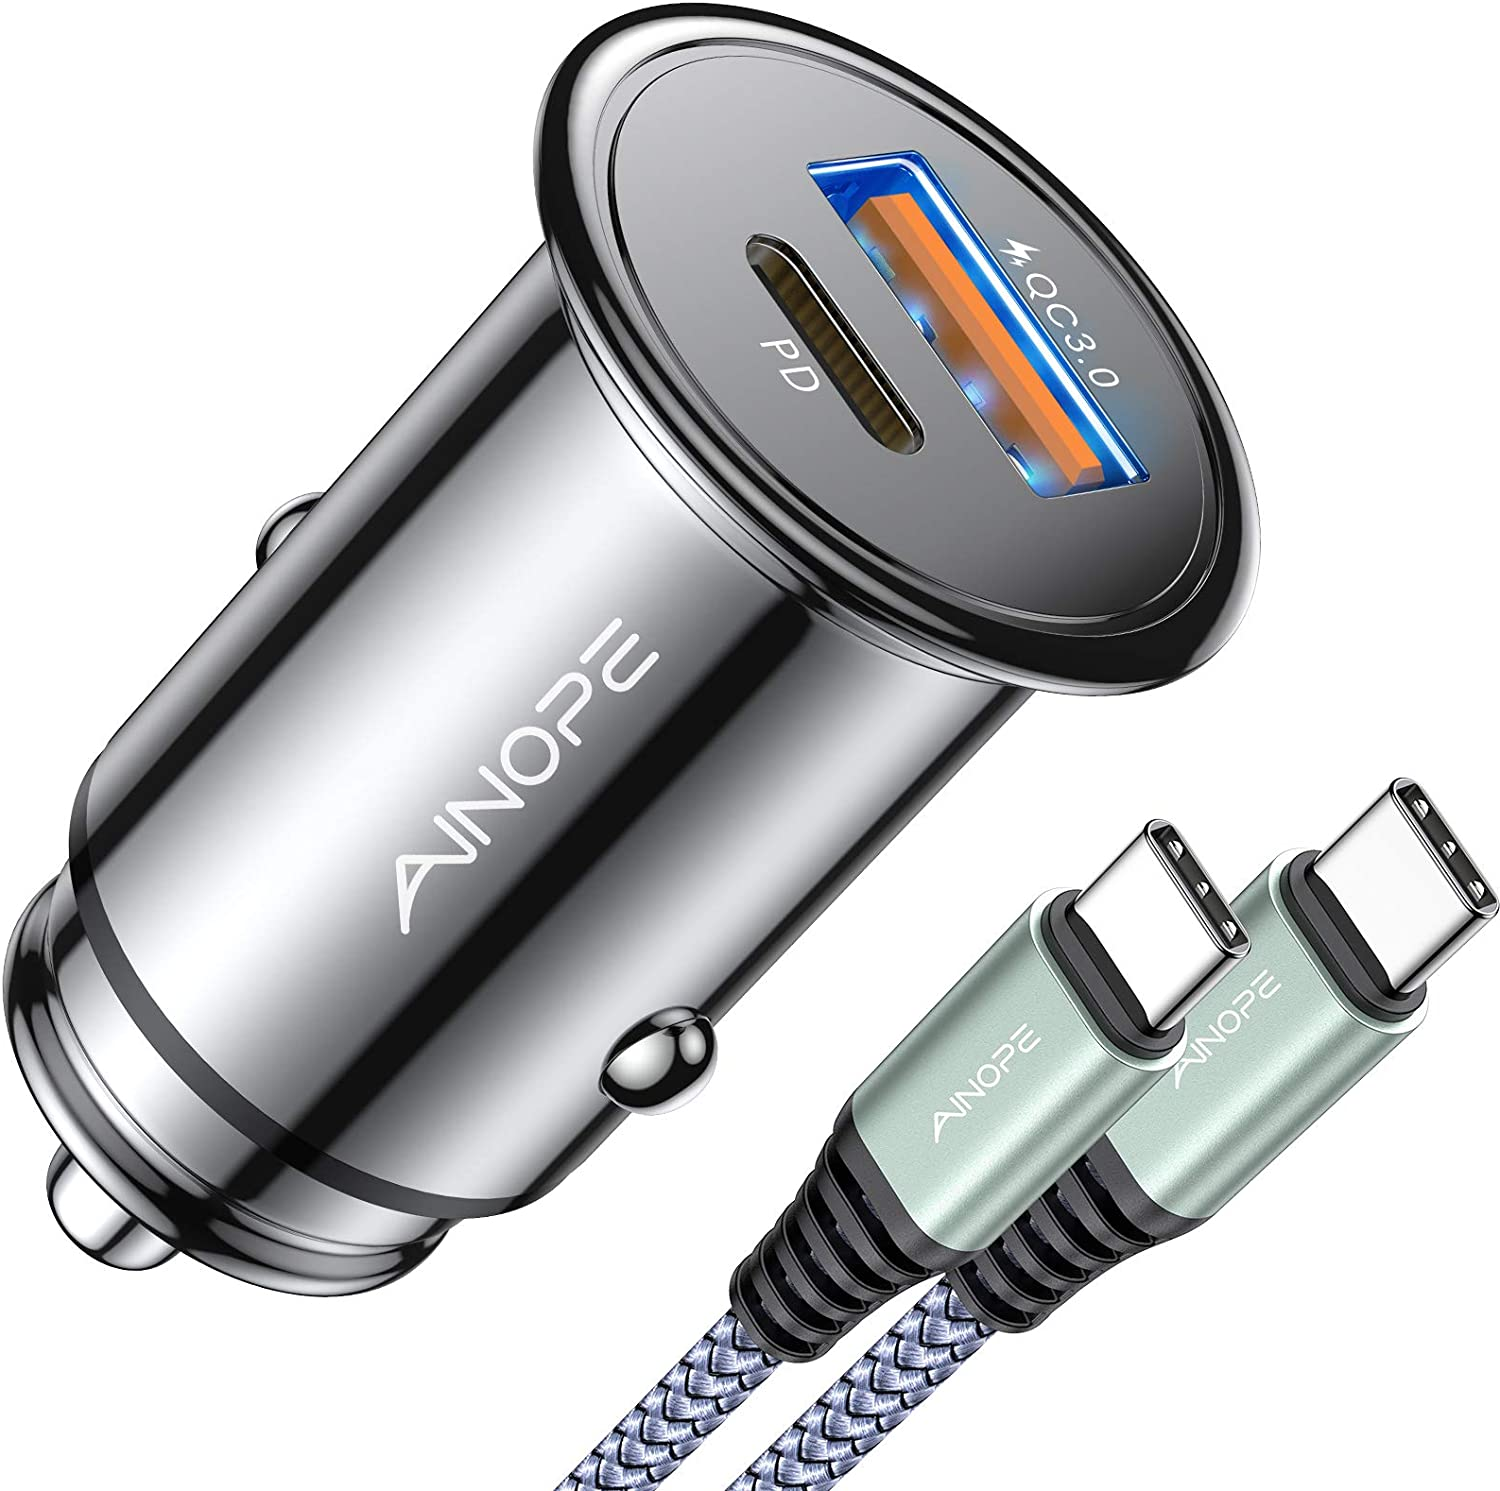 USB C Car Charger 42W Super Mini AINOPE All Metal Fast USB Car Charger PD&QC 3.0 Dual Port Car Adapter Compatible with iPhone 12/12 Pro/Max/12 Mini/iPhone 11/Pro/Max/XR/XS/Max/8, Galaxy S21/20/10/9